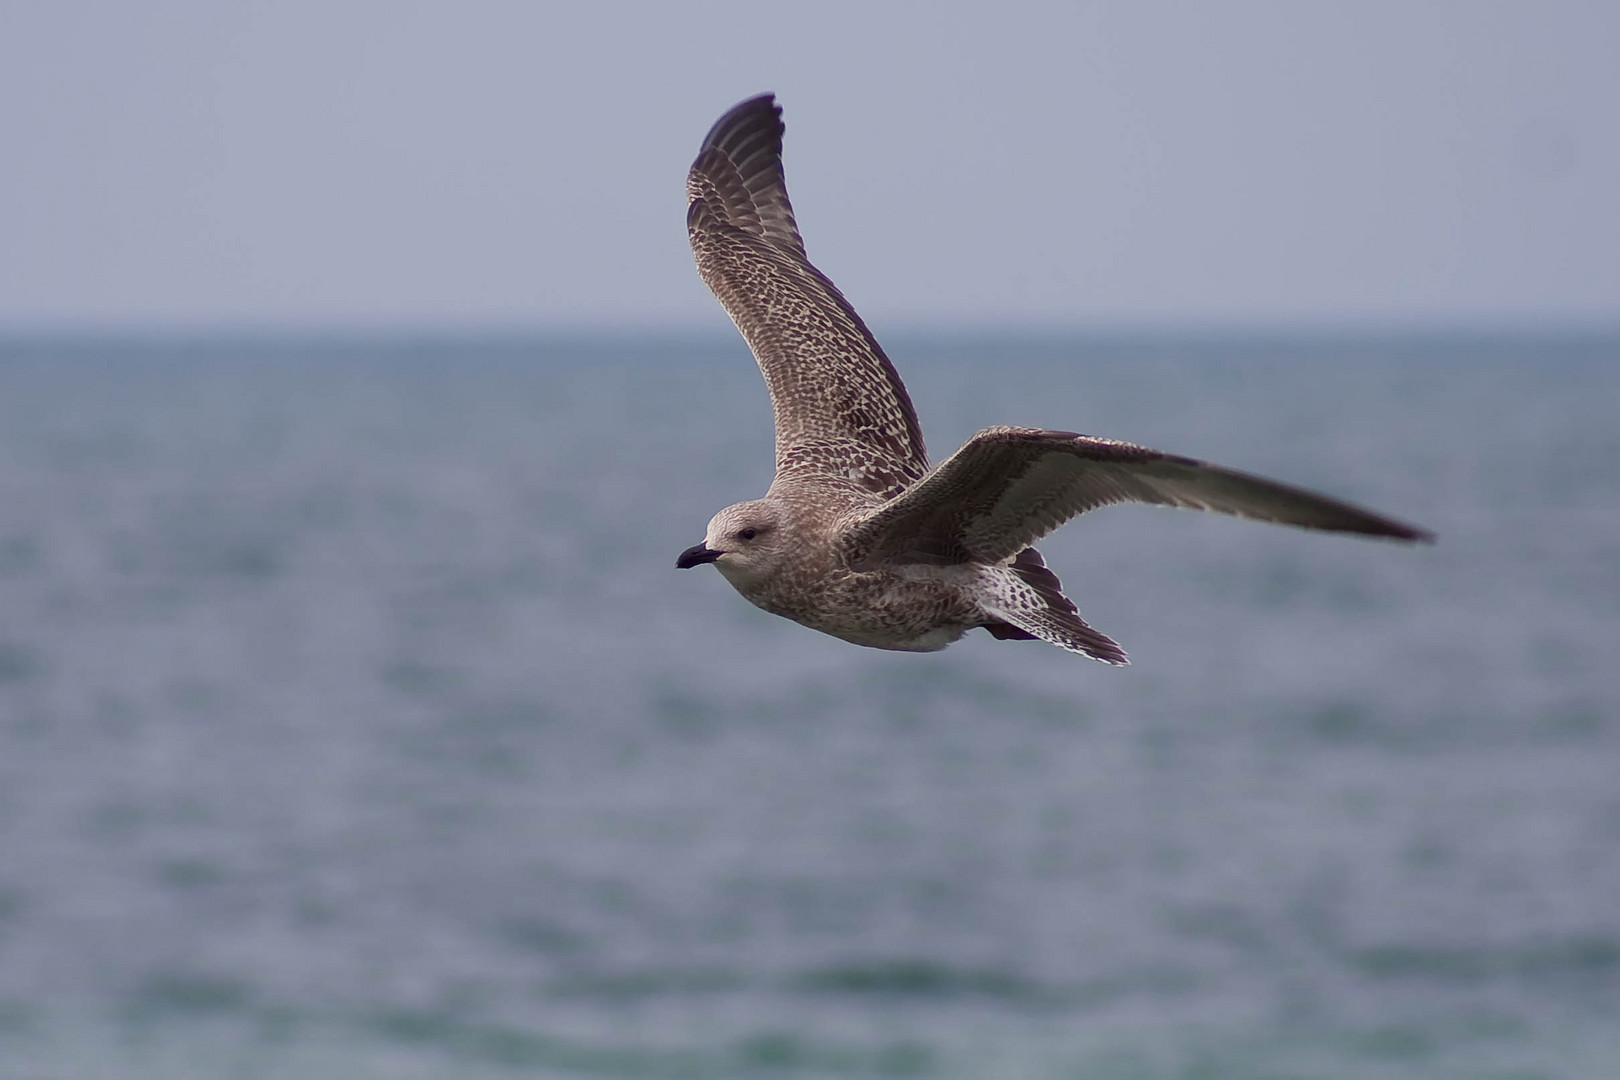 Fly with me over the ocean ....